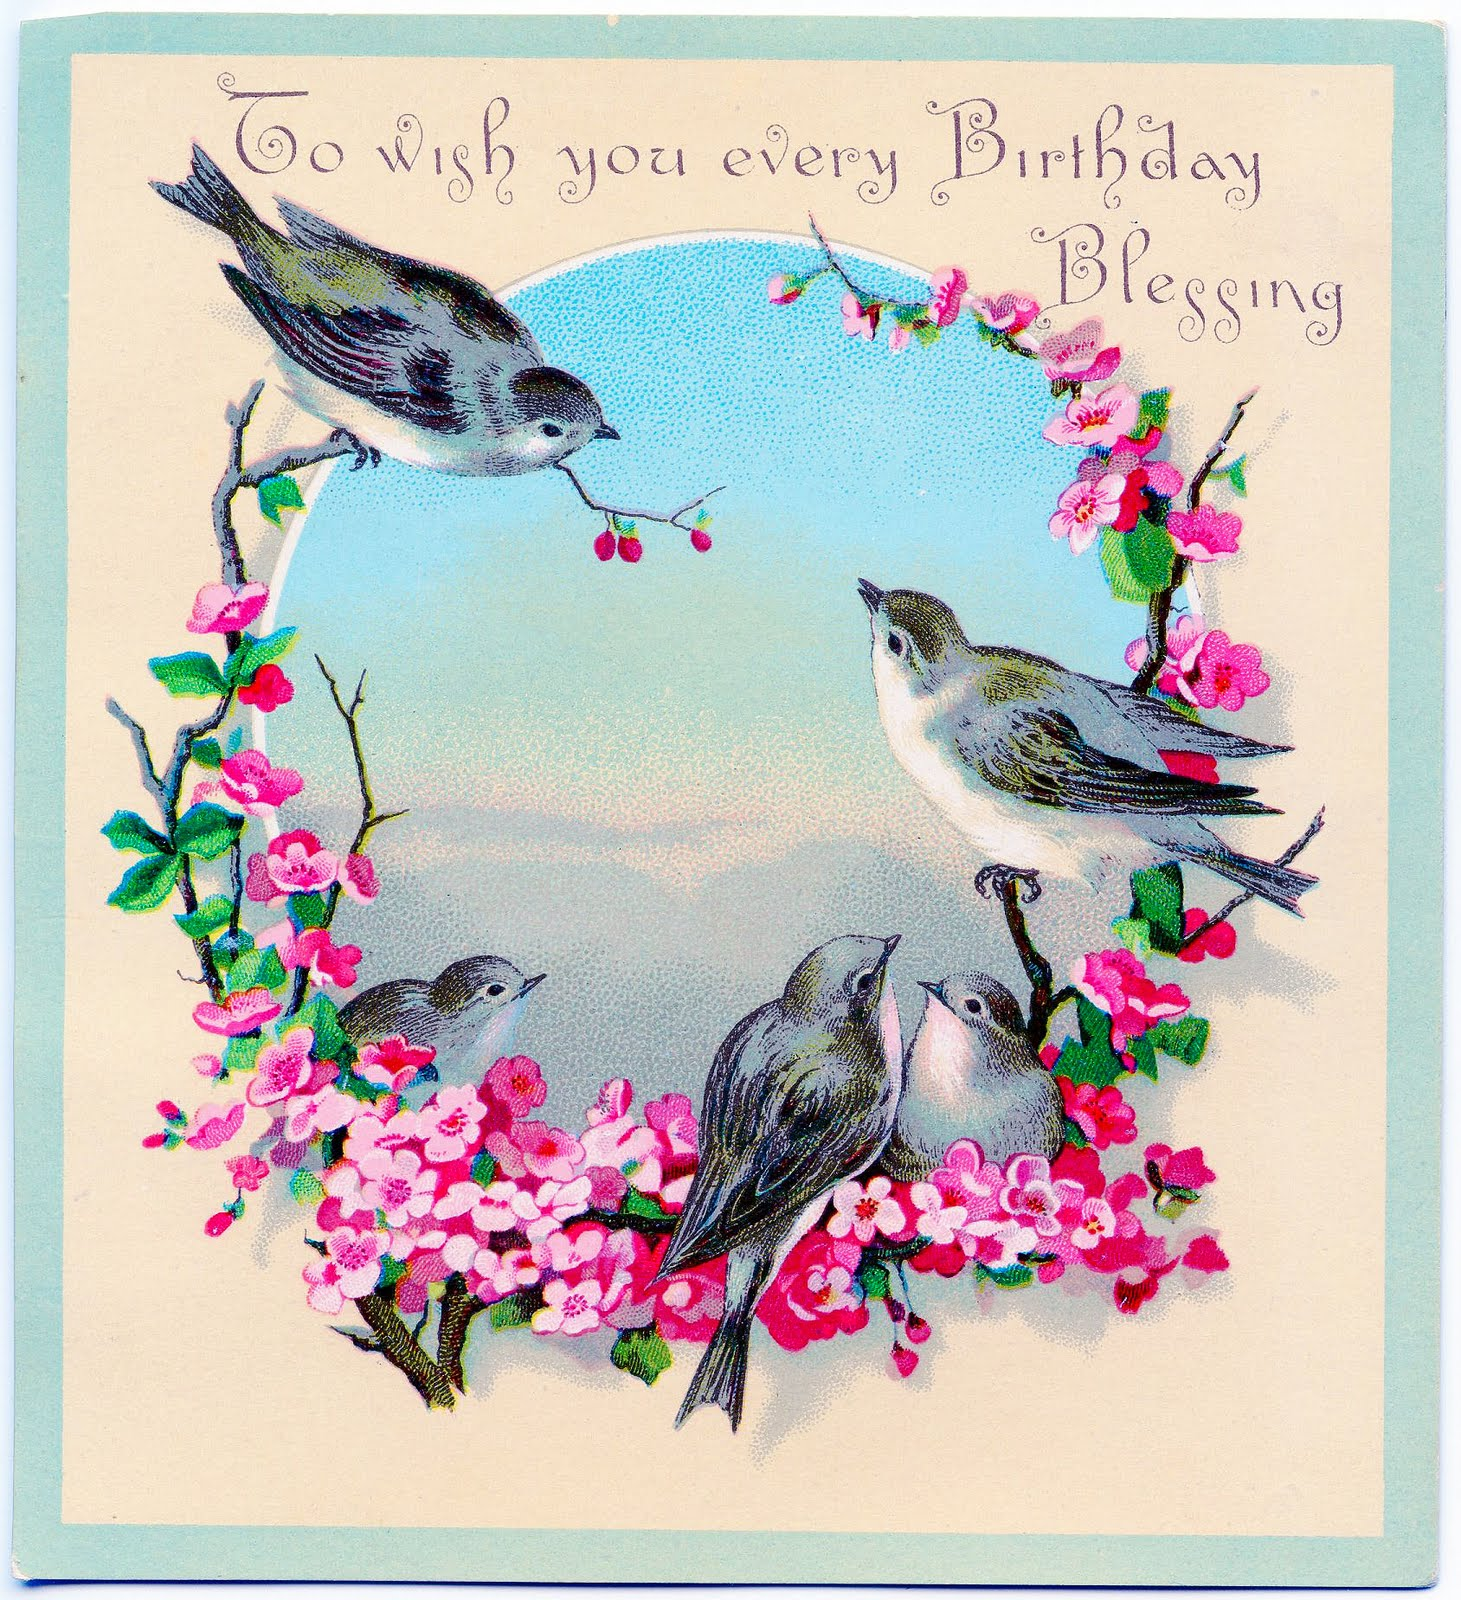 Vintage clip art image sweet birds with flowers birthday vintage clip art image sweet birds with flowers birthday greeting m4hsunfo